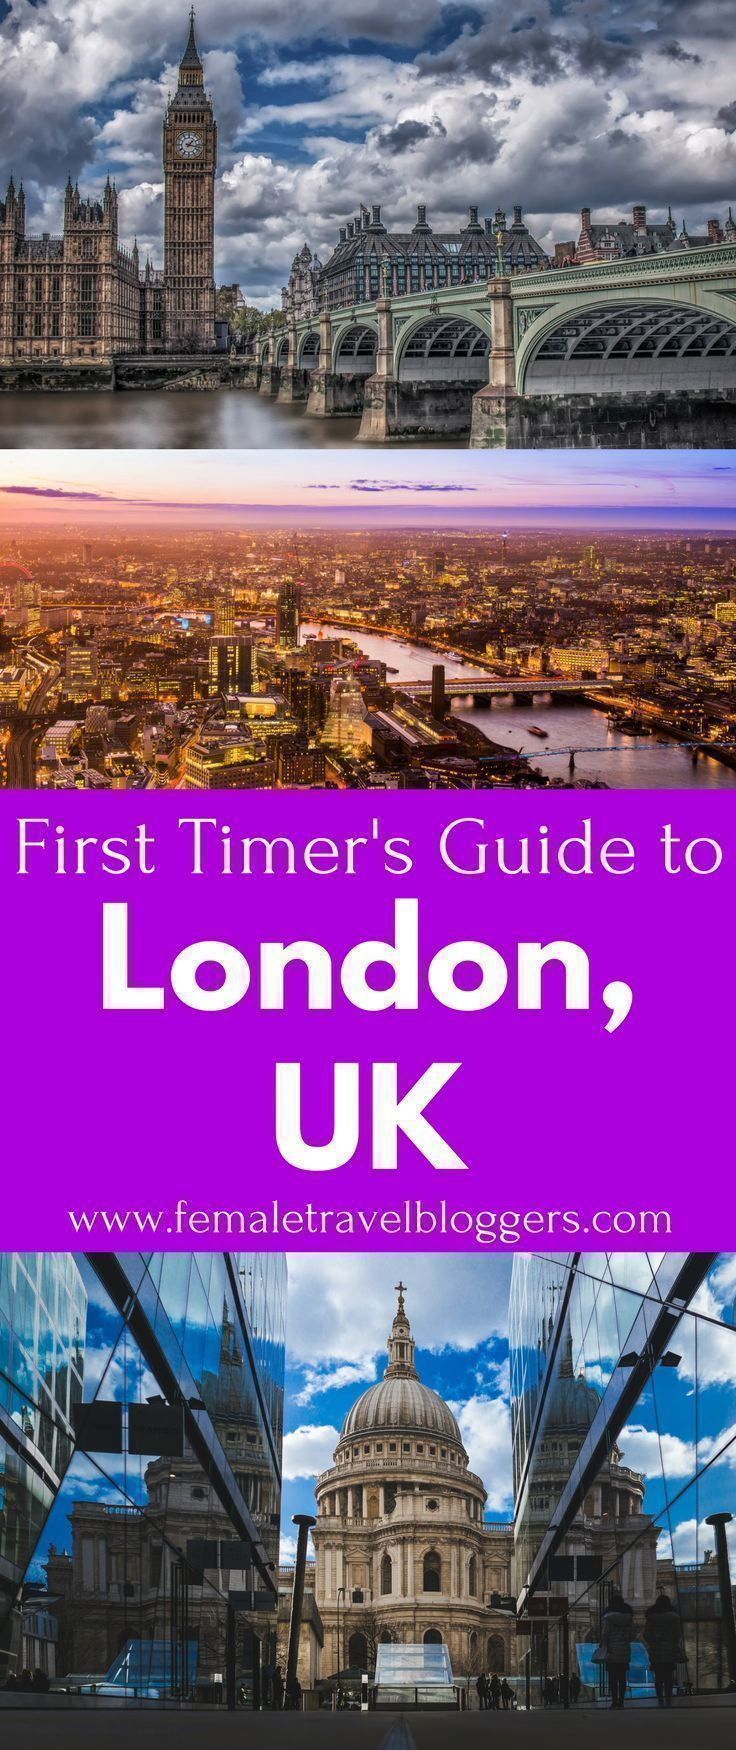 Are you planning a trip to London soon? If so, make sure you check out this first timer's guide to London, UK so you know what to expect. We will share what to eat in London, where to stay in London, things to do in London, what you have to see in London, and much more. Come check out this epic London guide and make sure you save it to your travel board so you can find it later. #london #londonuk #londontravel #londonguide